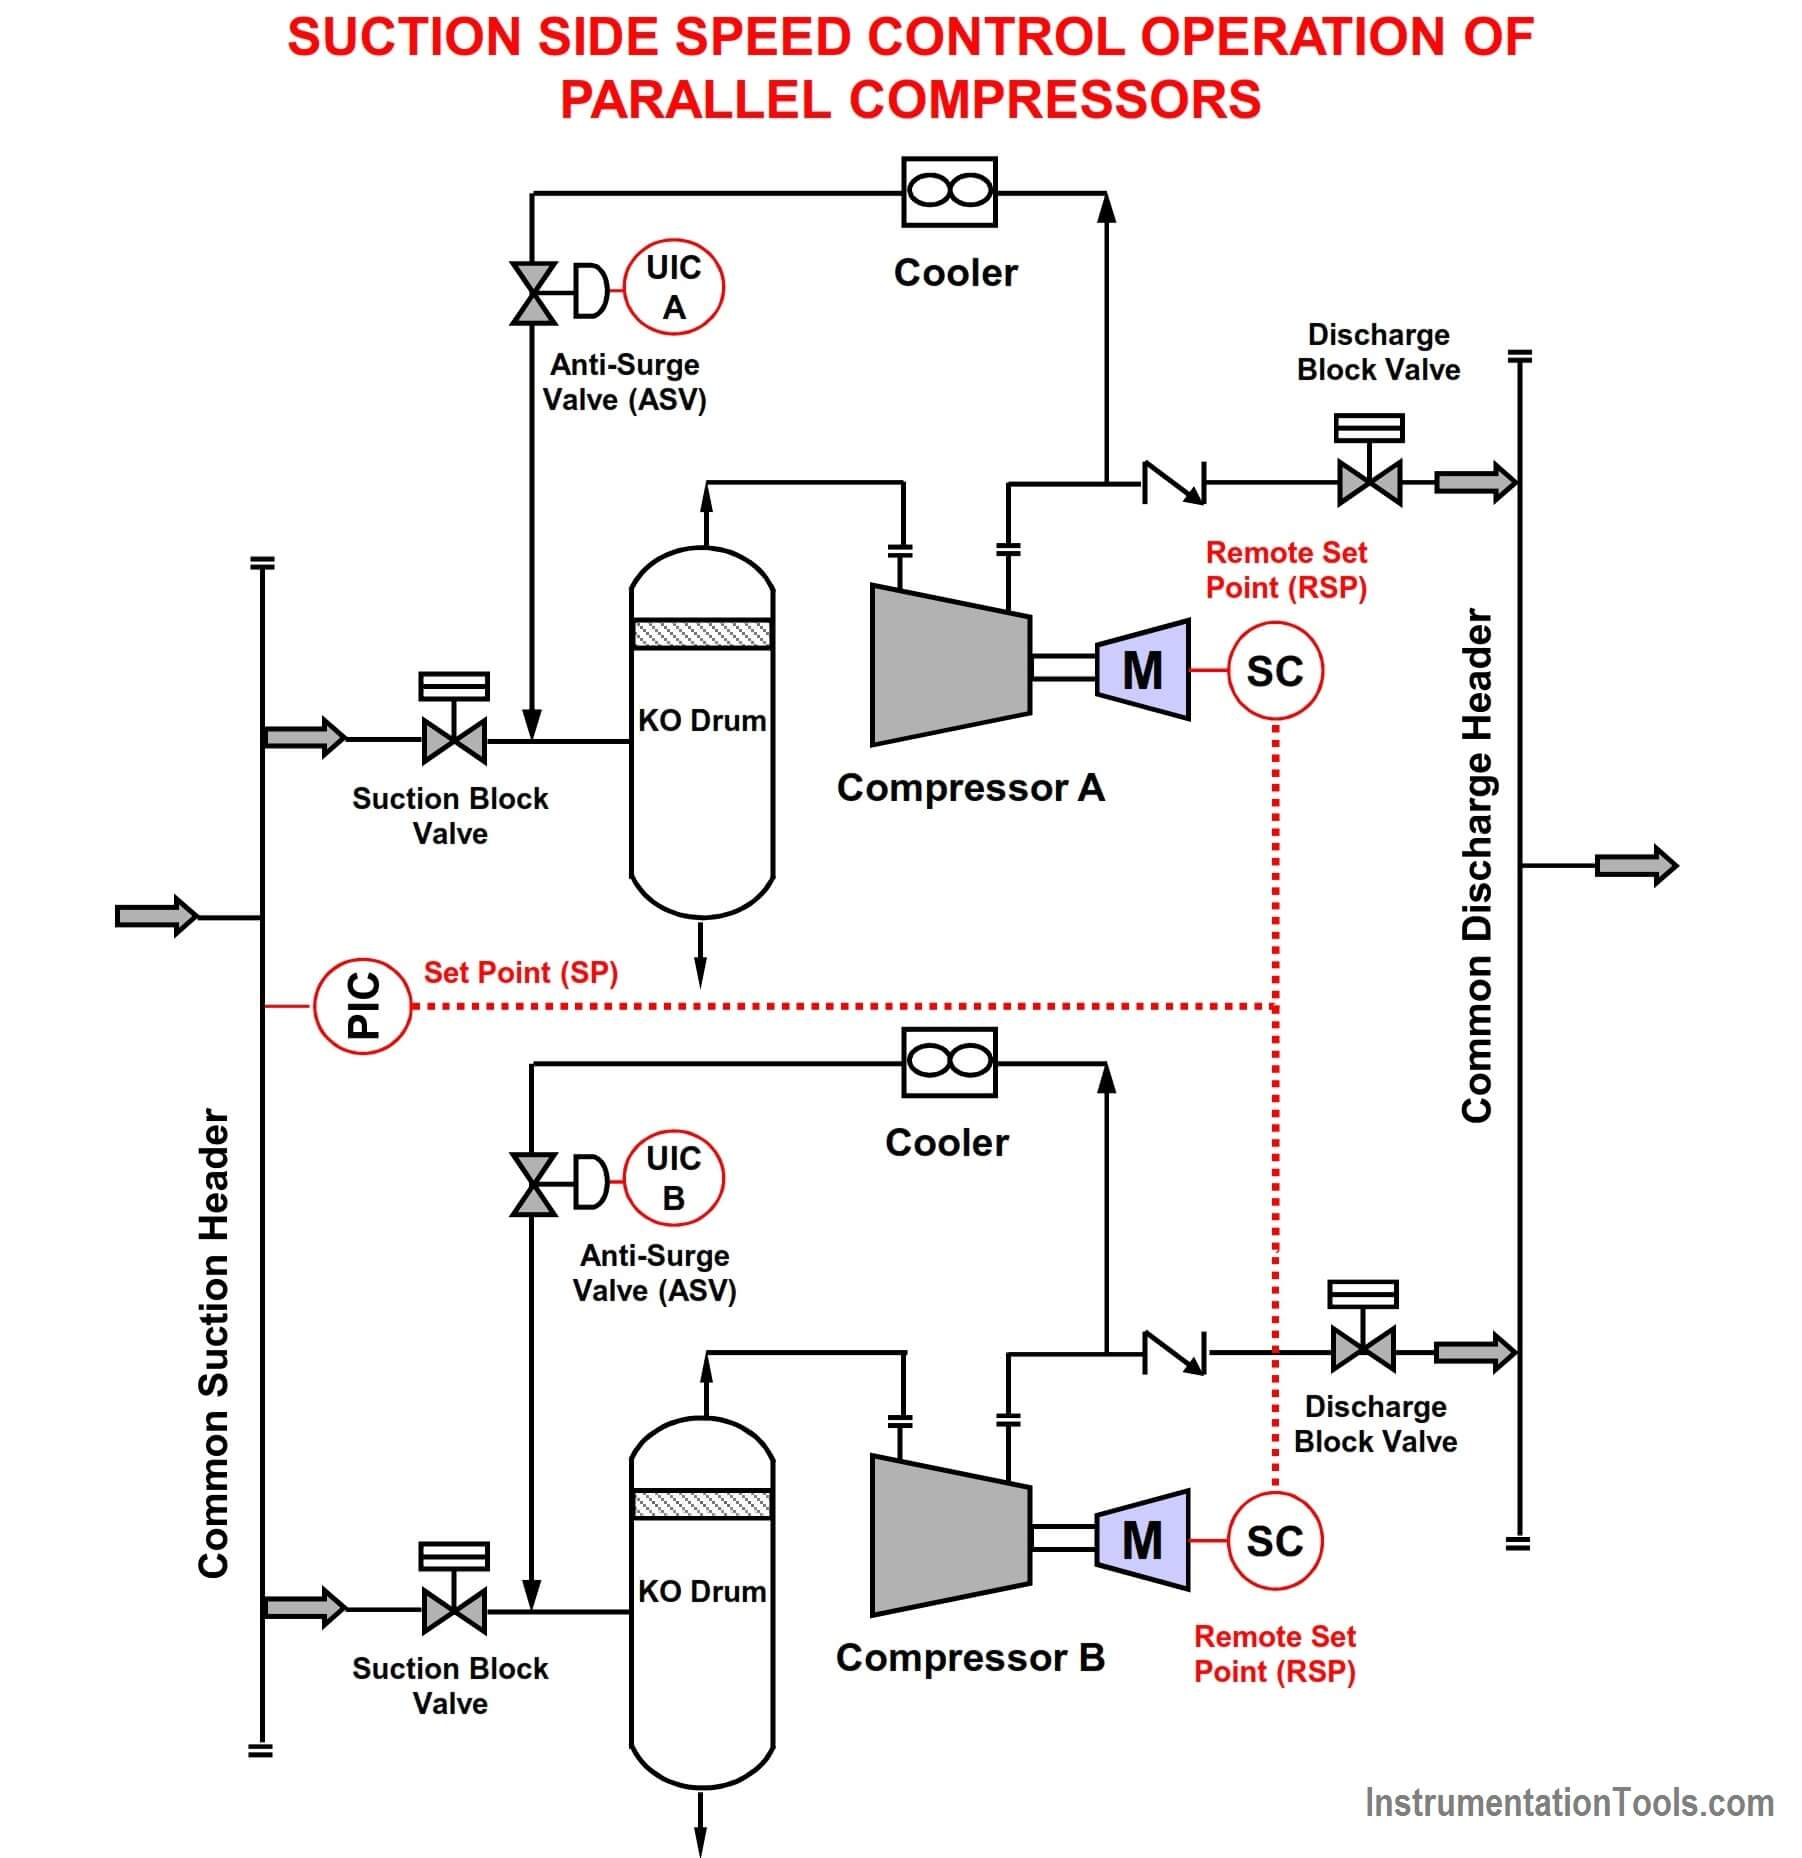 Suction Side Speed Control Operation of Parallel Compressors